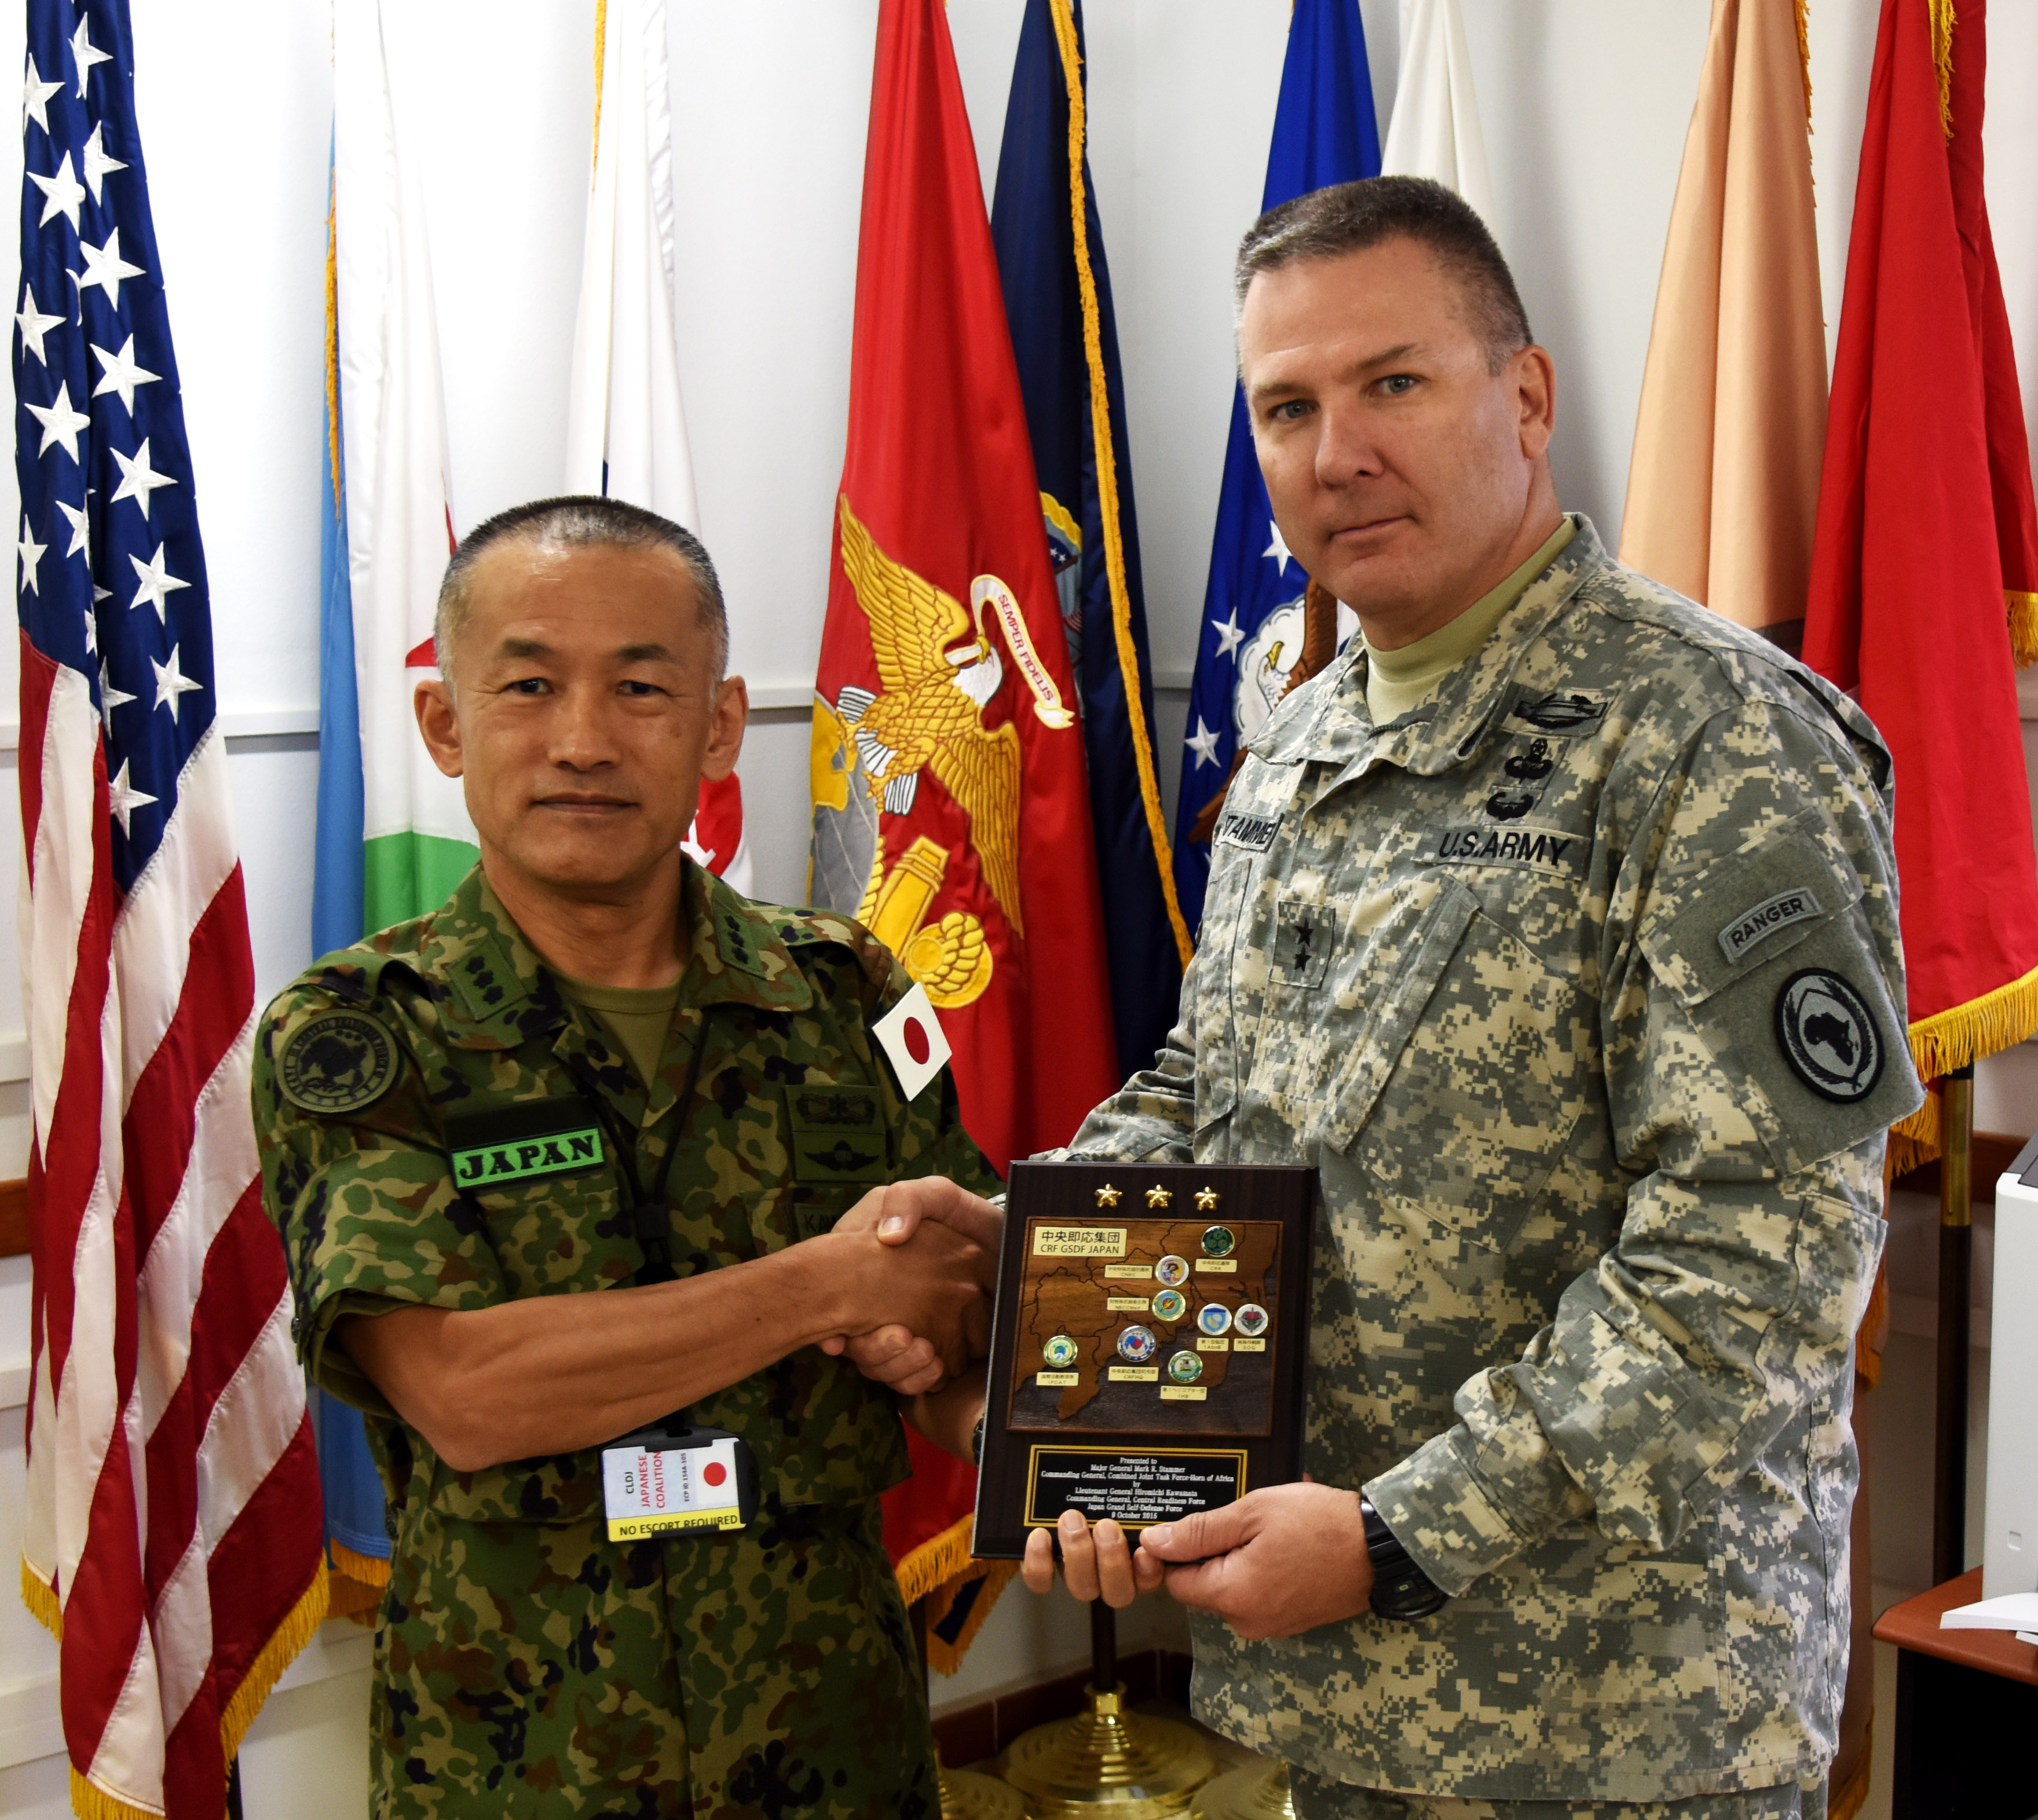 151009-N-DJ346-018 CAMP LEMONNIER, Djibouti (October 9, 2015) Lt. Gen. Hiromichi Kawamata, Commanding General, Japan Ground Self Defense Force, Central Readiness Force, presents Major General Mark R. Stammer, Commanding General, Combined Joint Task Force – Horn of Africa, with a plaque. The two leaders met to discuss future objectives and information sharing opportunities. General Stammer told General Kawamata that Japanese Defense Forces are and remain valued friends and partners of CJTF-HOA. (U.S. Navy photo by Chief Mass Communication Specialist Donald W. Randall/Released)